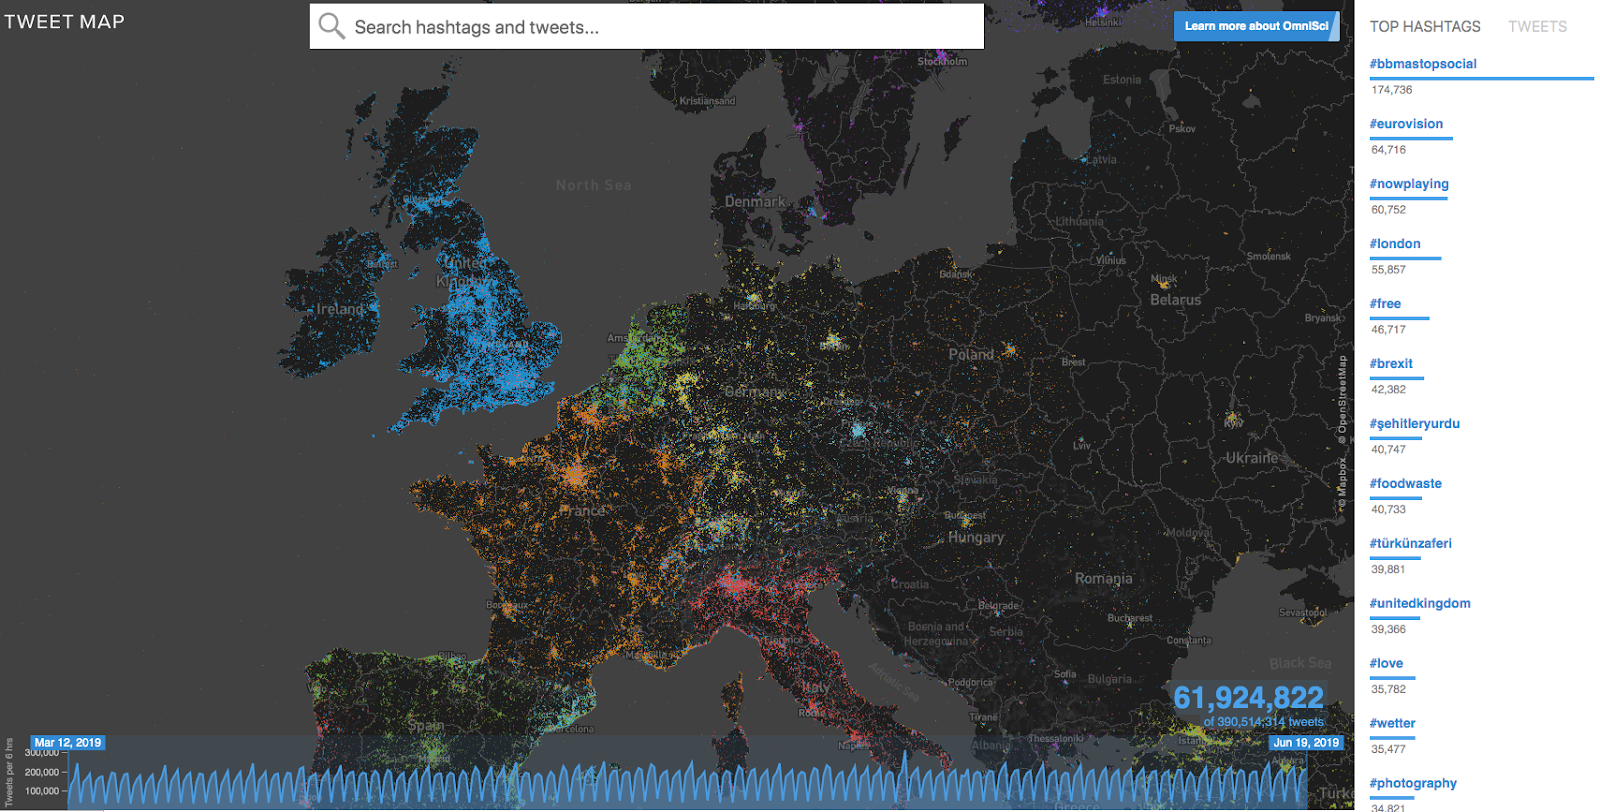 Location intelligence photo shows a map of Europe color coated based on the density of Tweets for a specific time period using the OmniSci Tweetmap visualization demo.